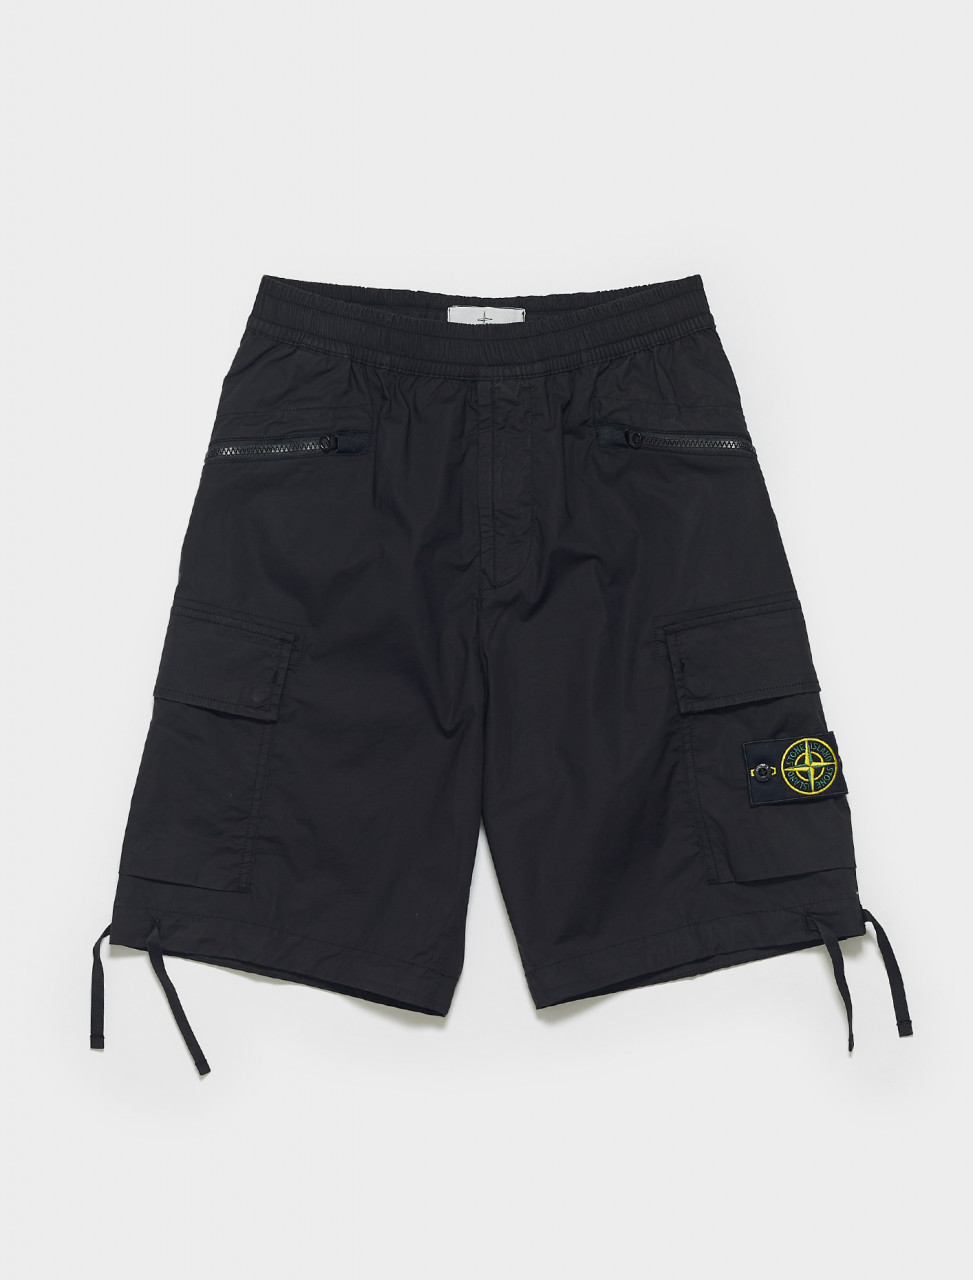 MO7415L0403-V0029 STONE ISLAND BERMUDA SHORTS IN BLACK